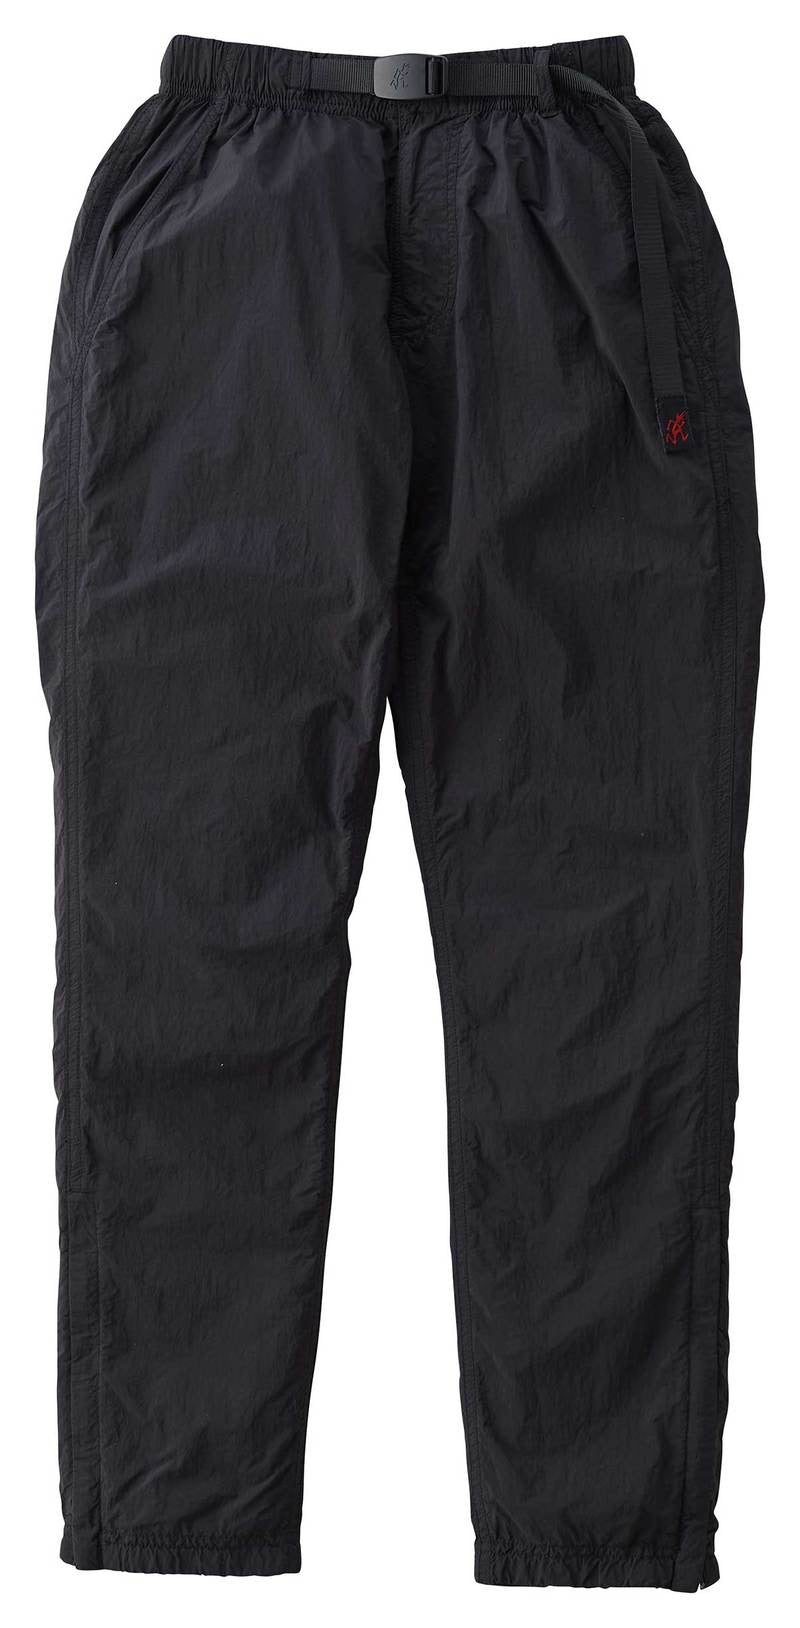 GRAMICCI PACKABLE TRUCK PANTS